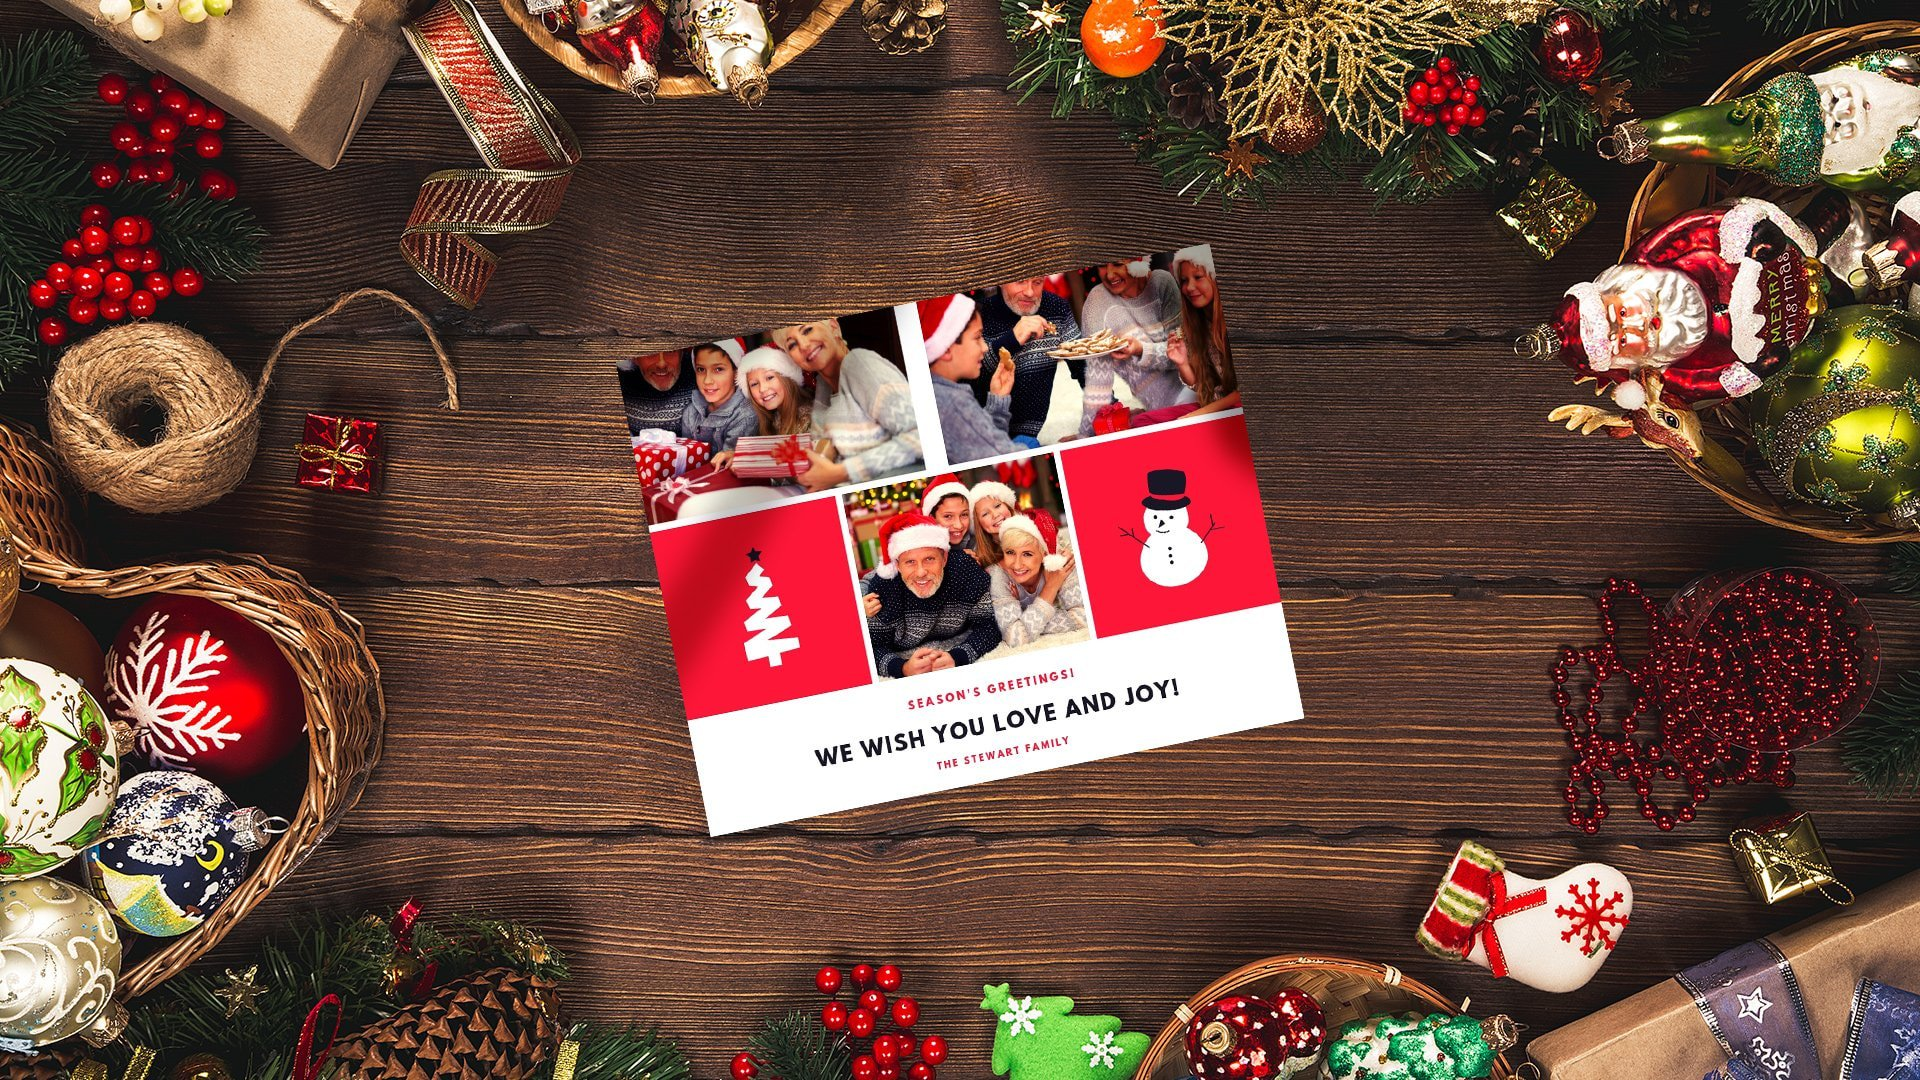 19 funny christmas and holiday card ideas to try this year funny christmas and holiday card ideas